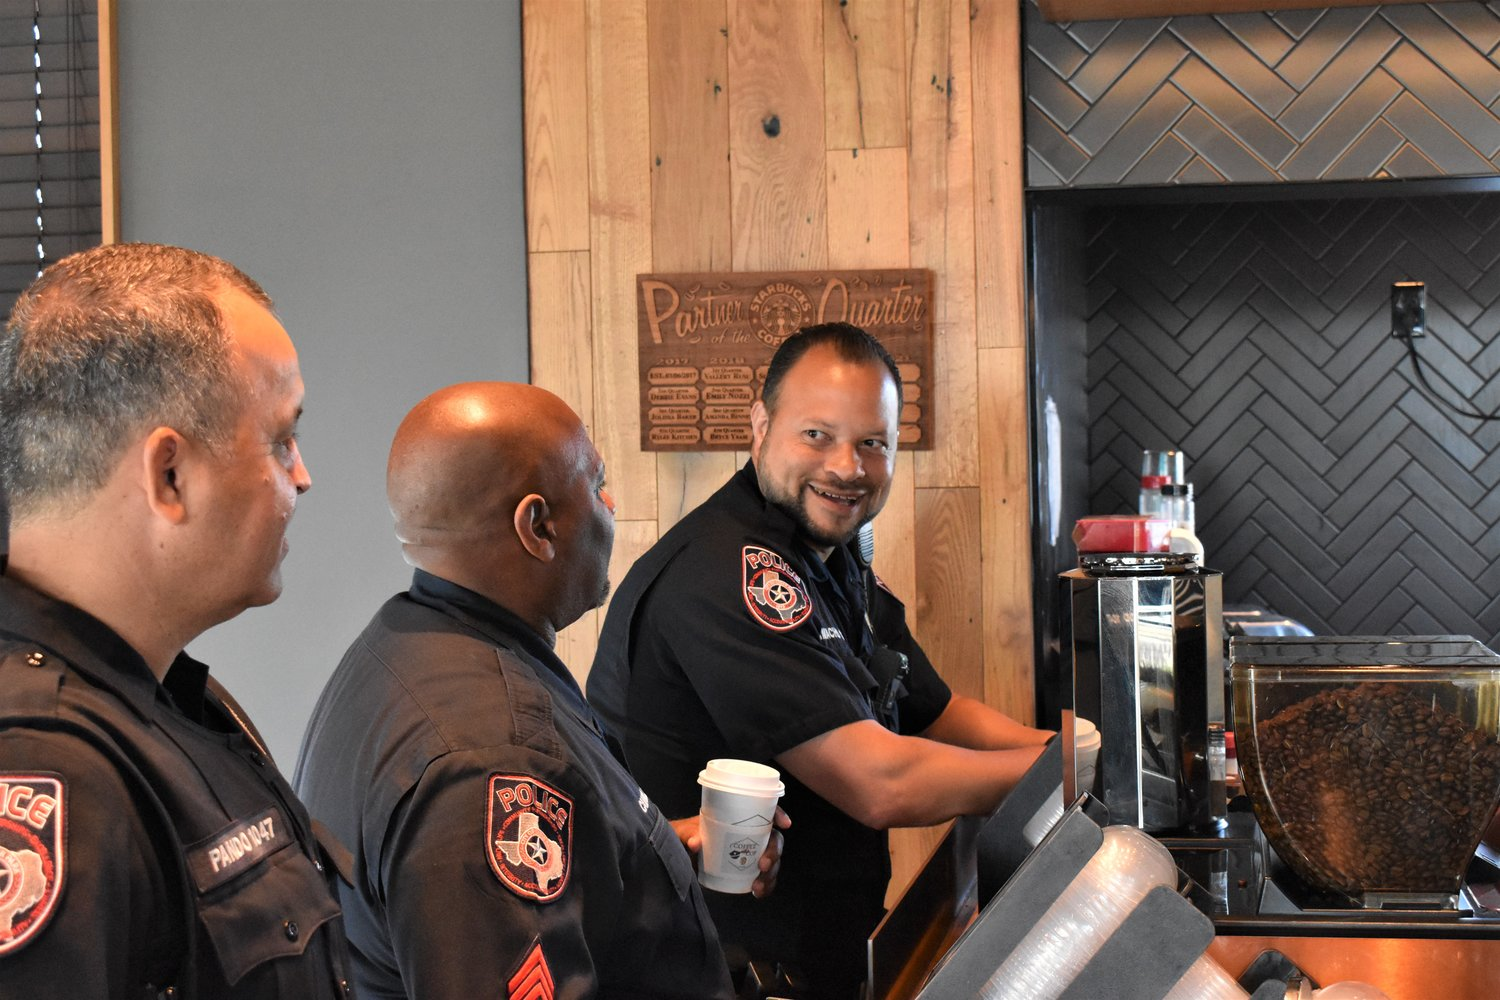 Cedar Park police officer David Camacho chats with Sgt. Jessie Campbell and Corporal Ricky Pando near the front counter as the Coffee With A Cop event winds down.